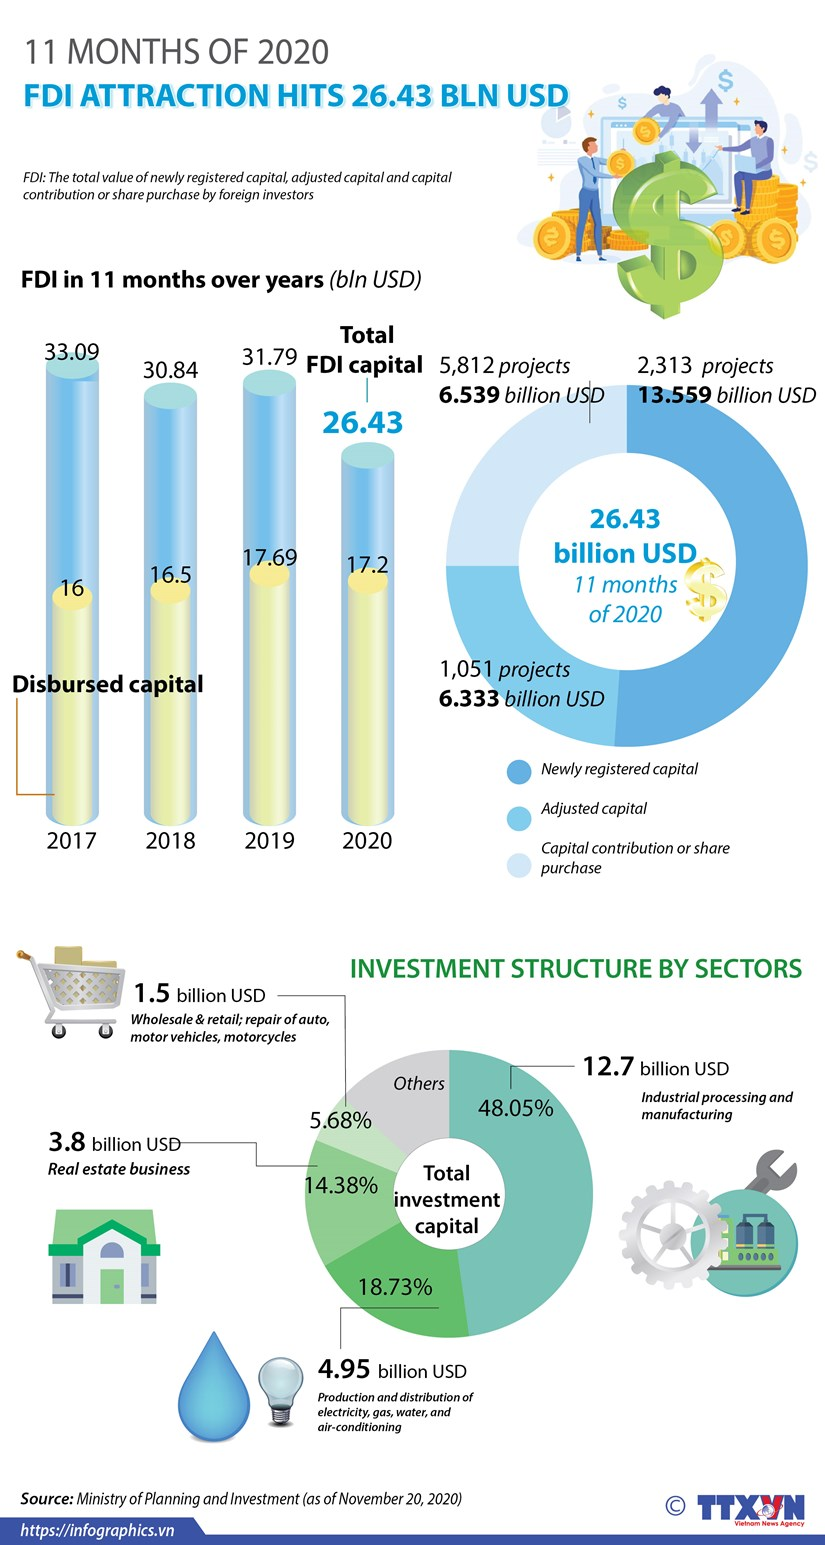 FDI attraction hits 26.43 bln USD in 11 months hinh anh 1